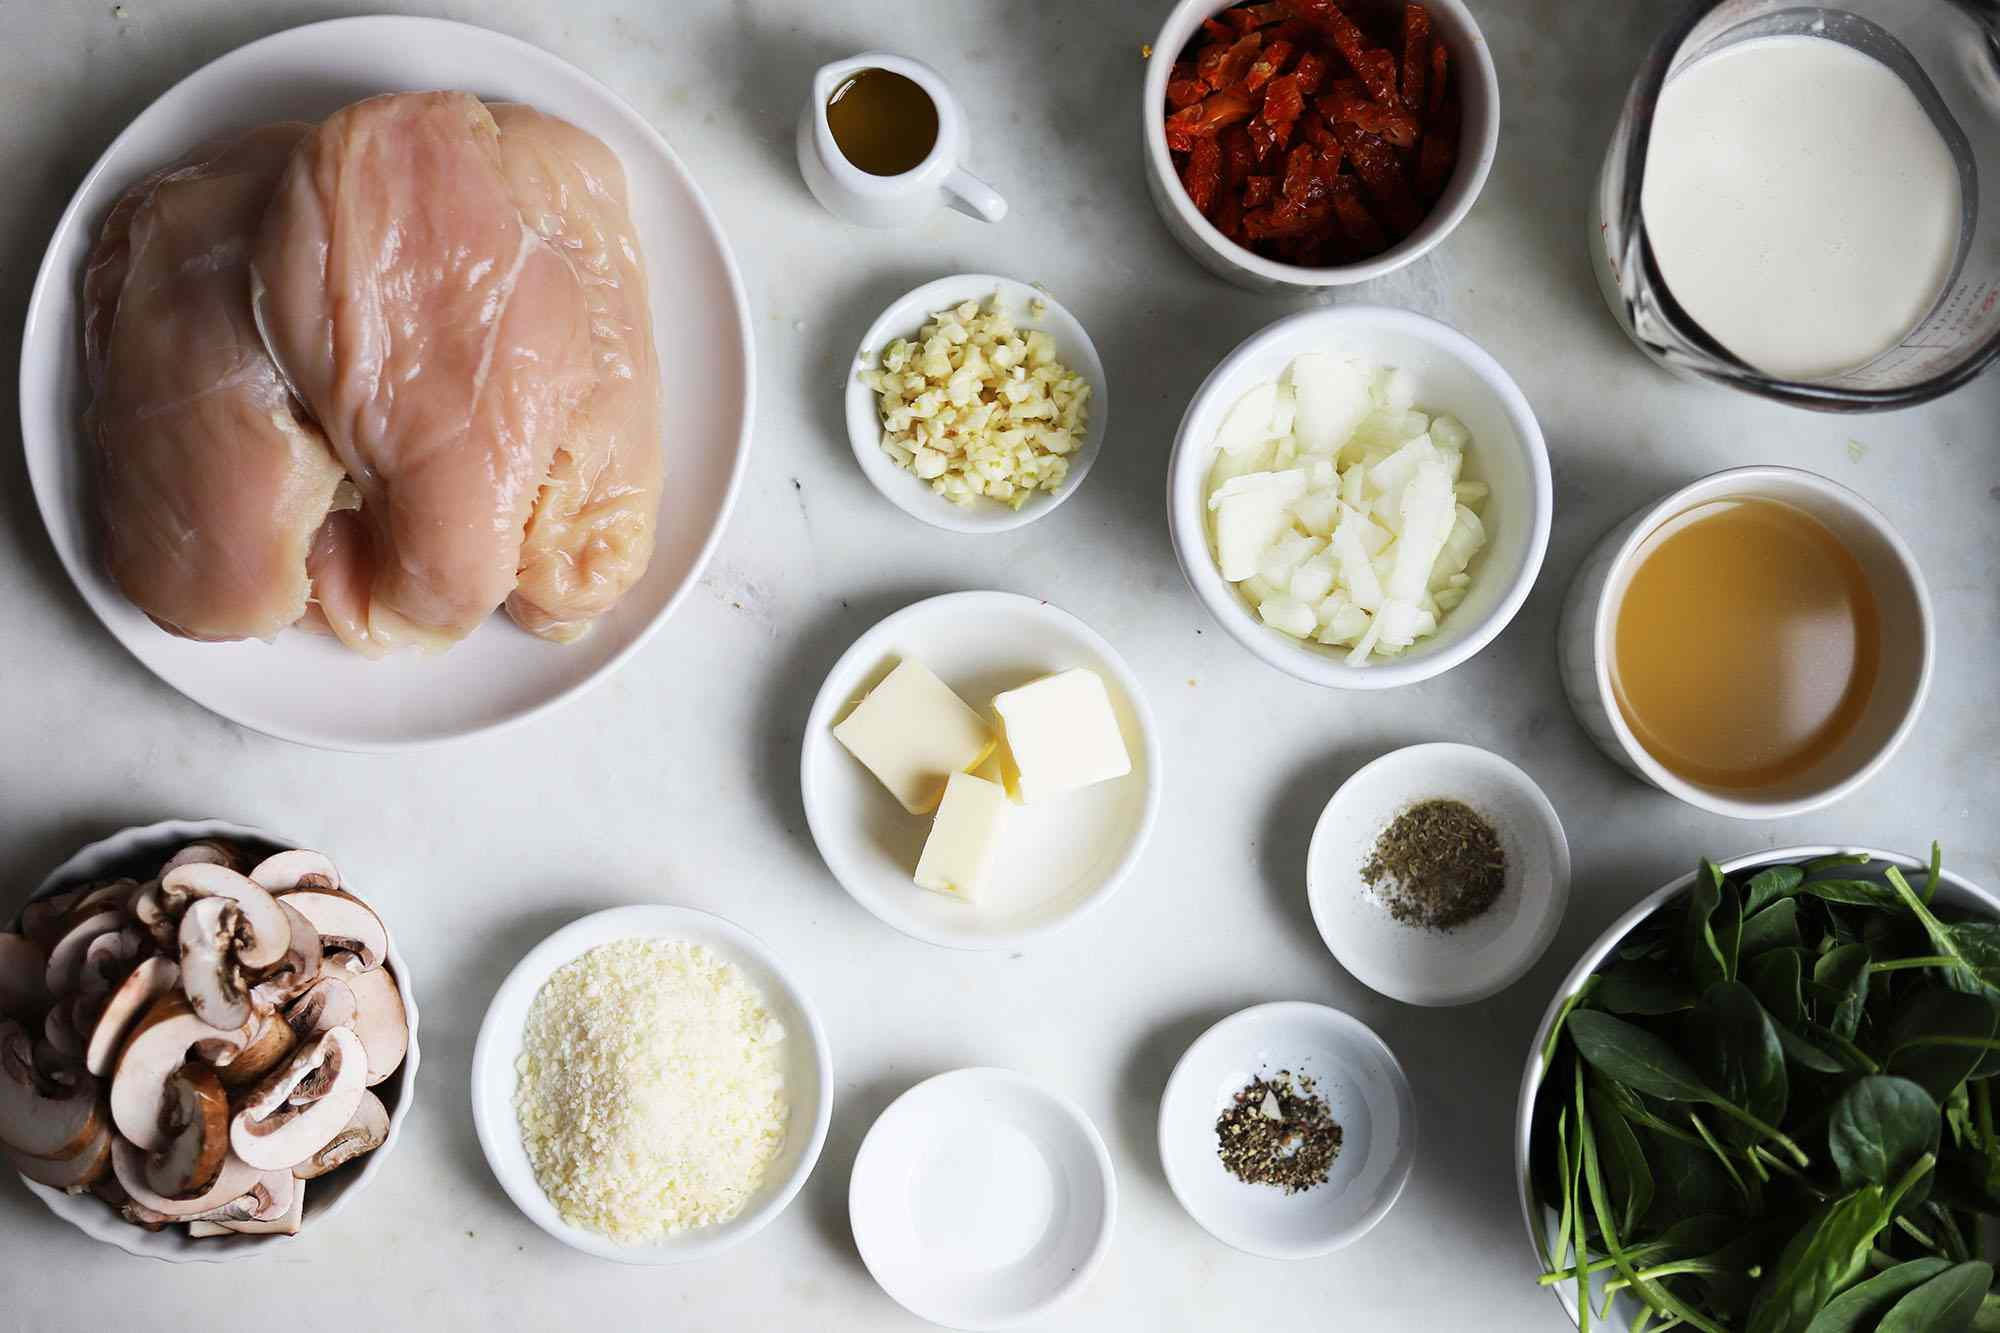 ingredients for Instant Pot Tuscan chicken